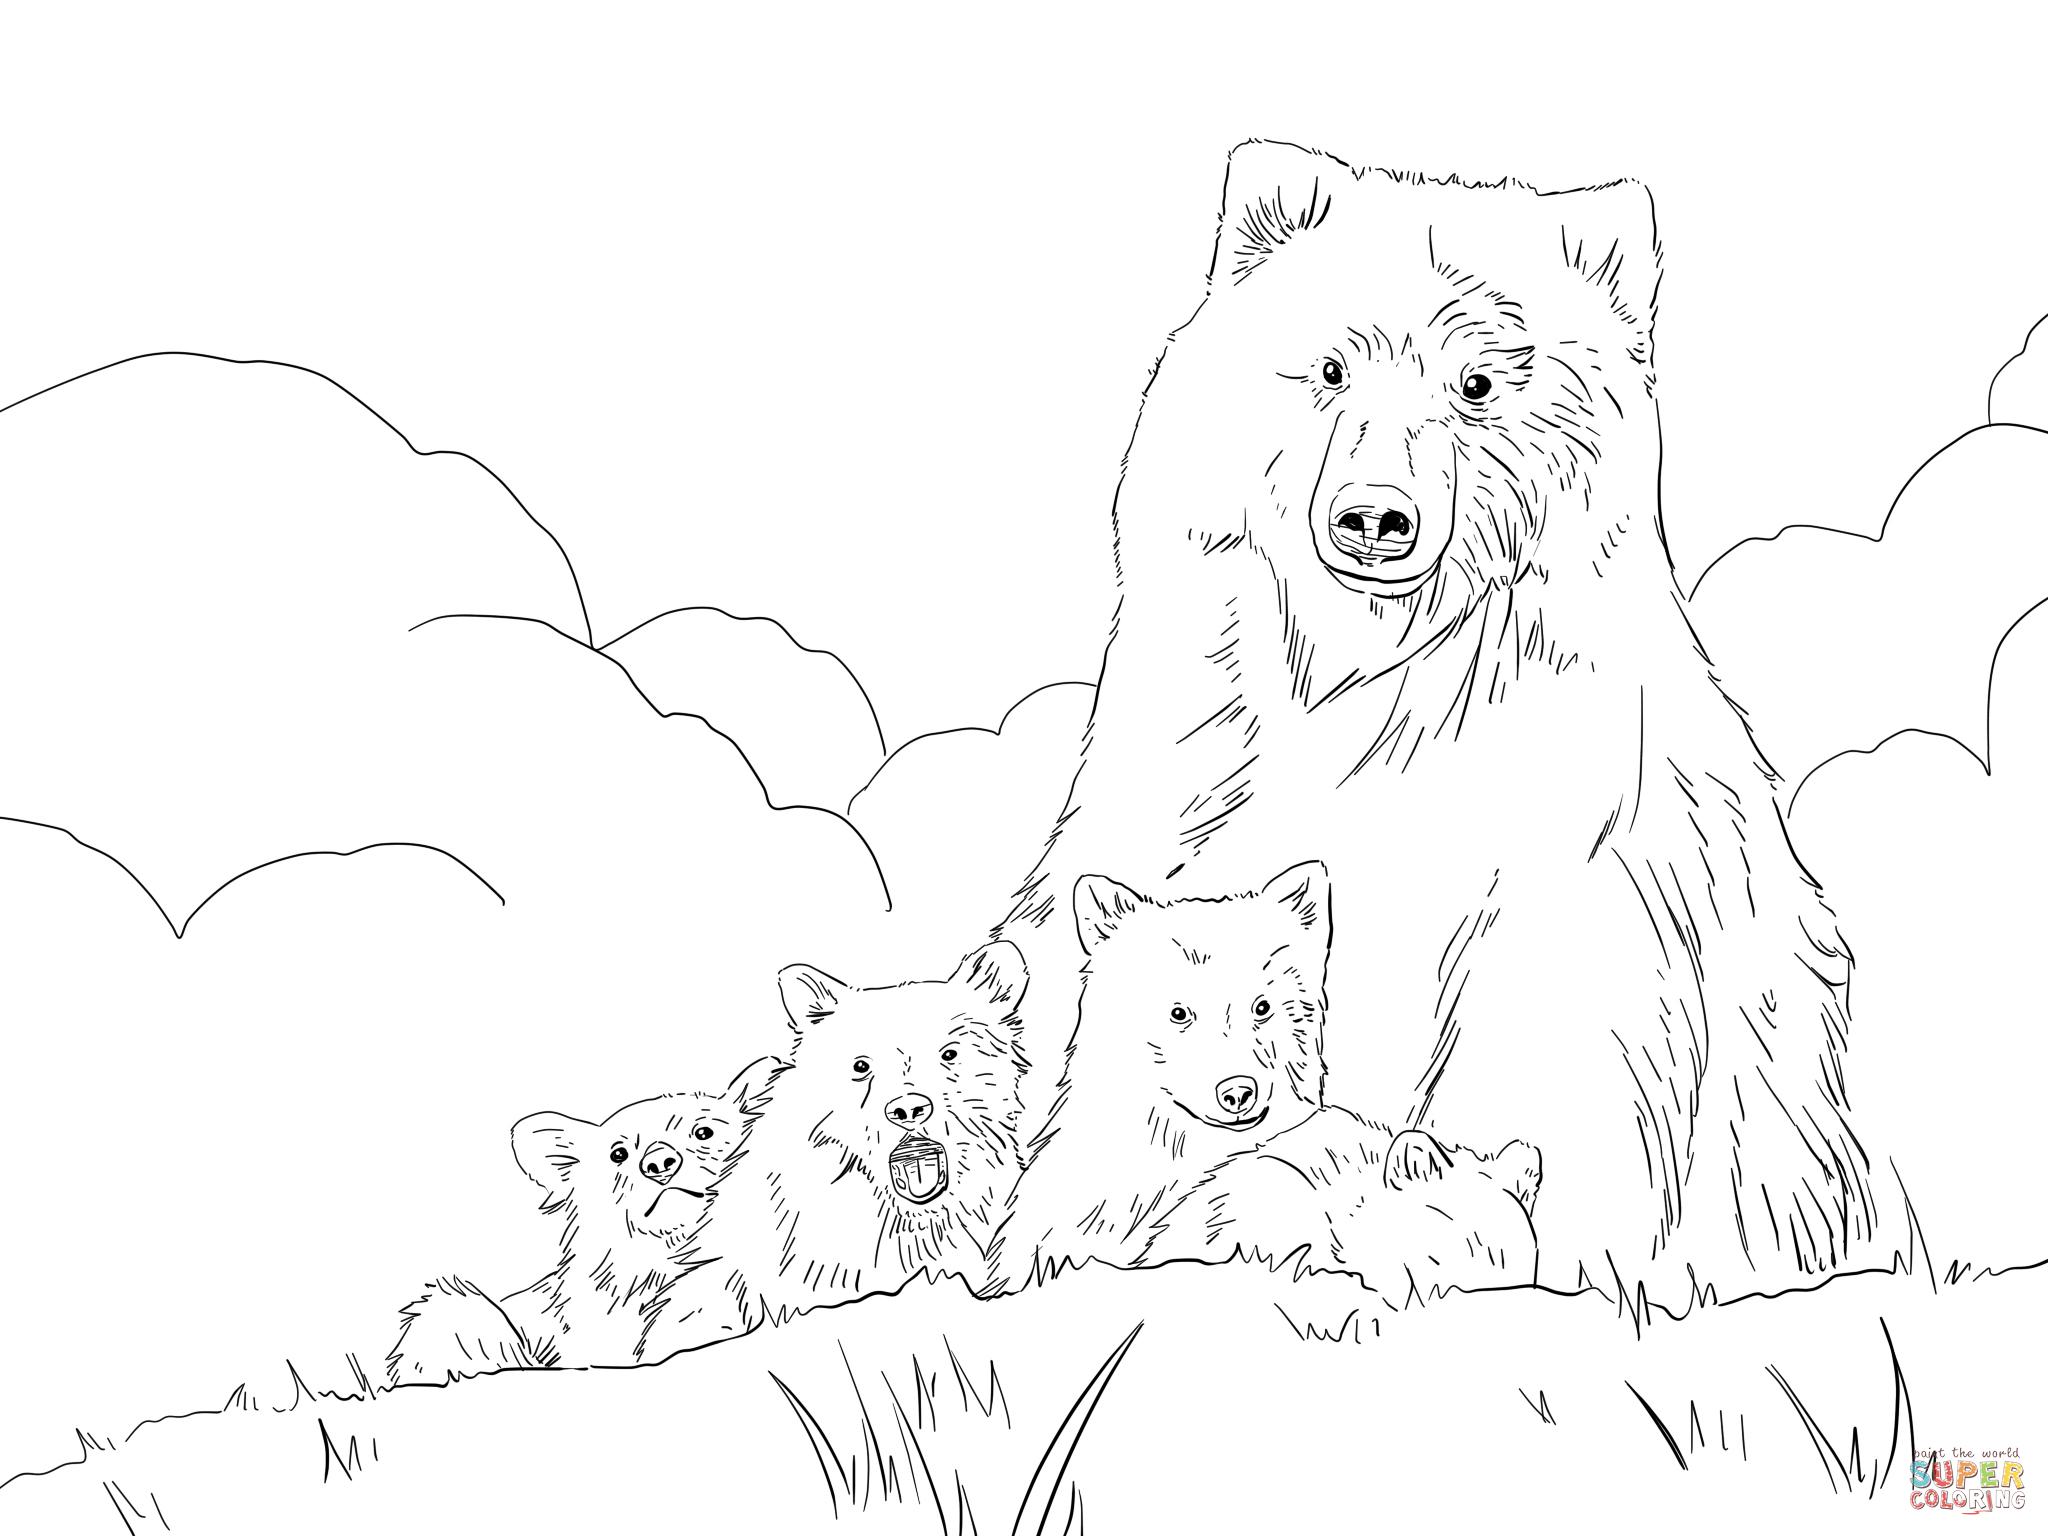 2048x1536 How To Draw A Detailed Grizzly Bear Step By Step